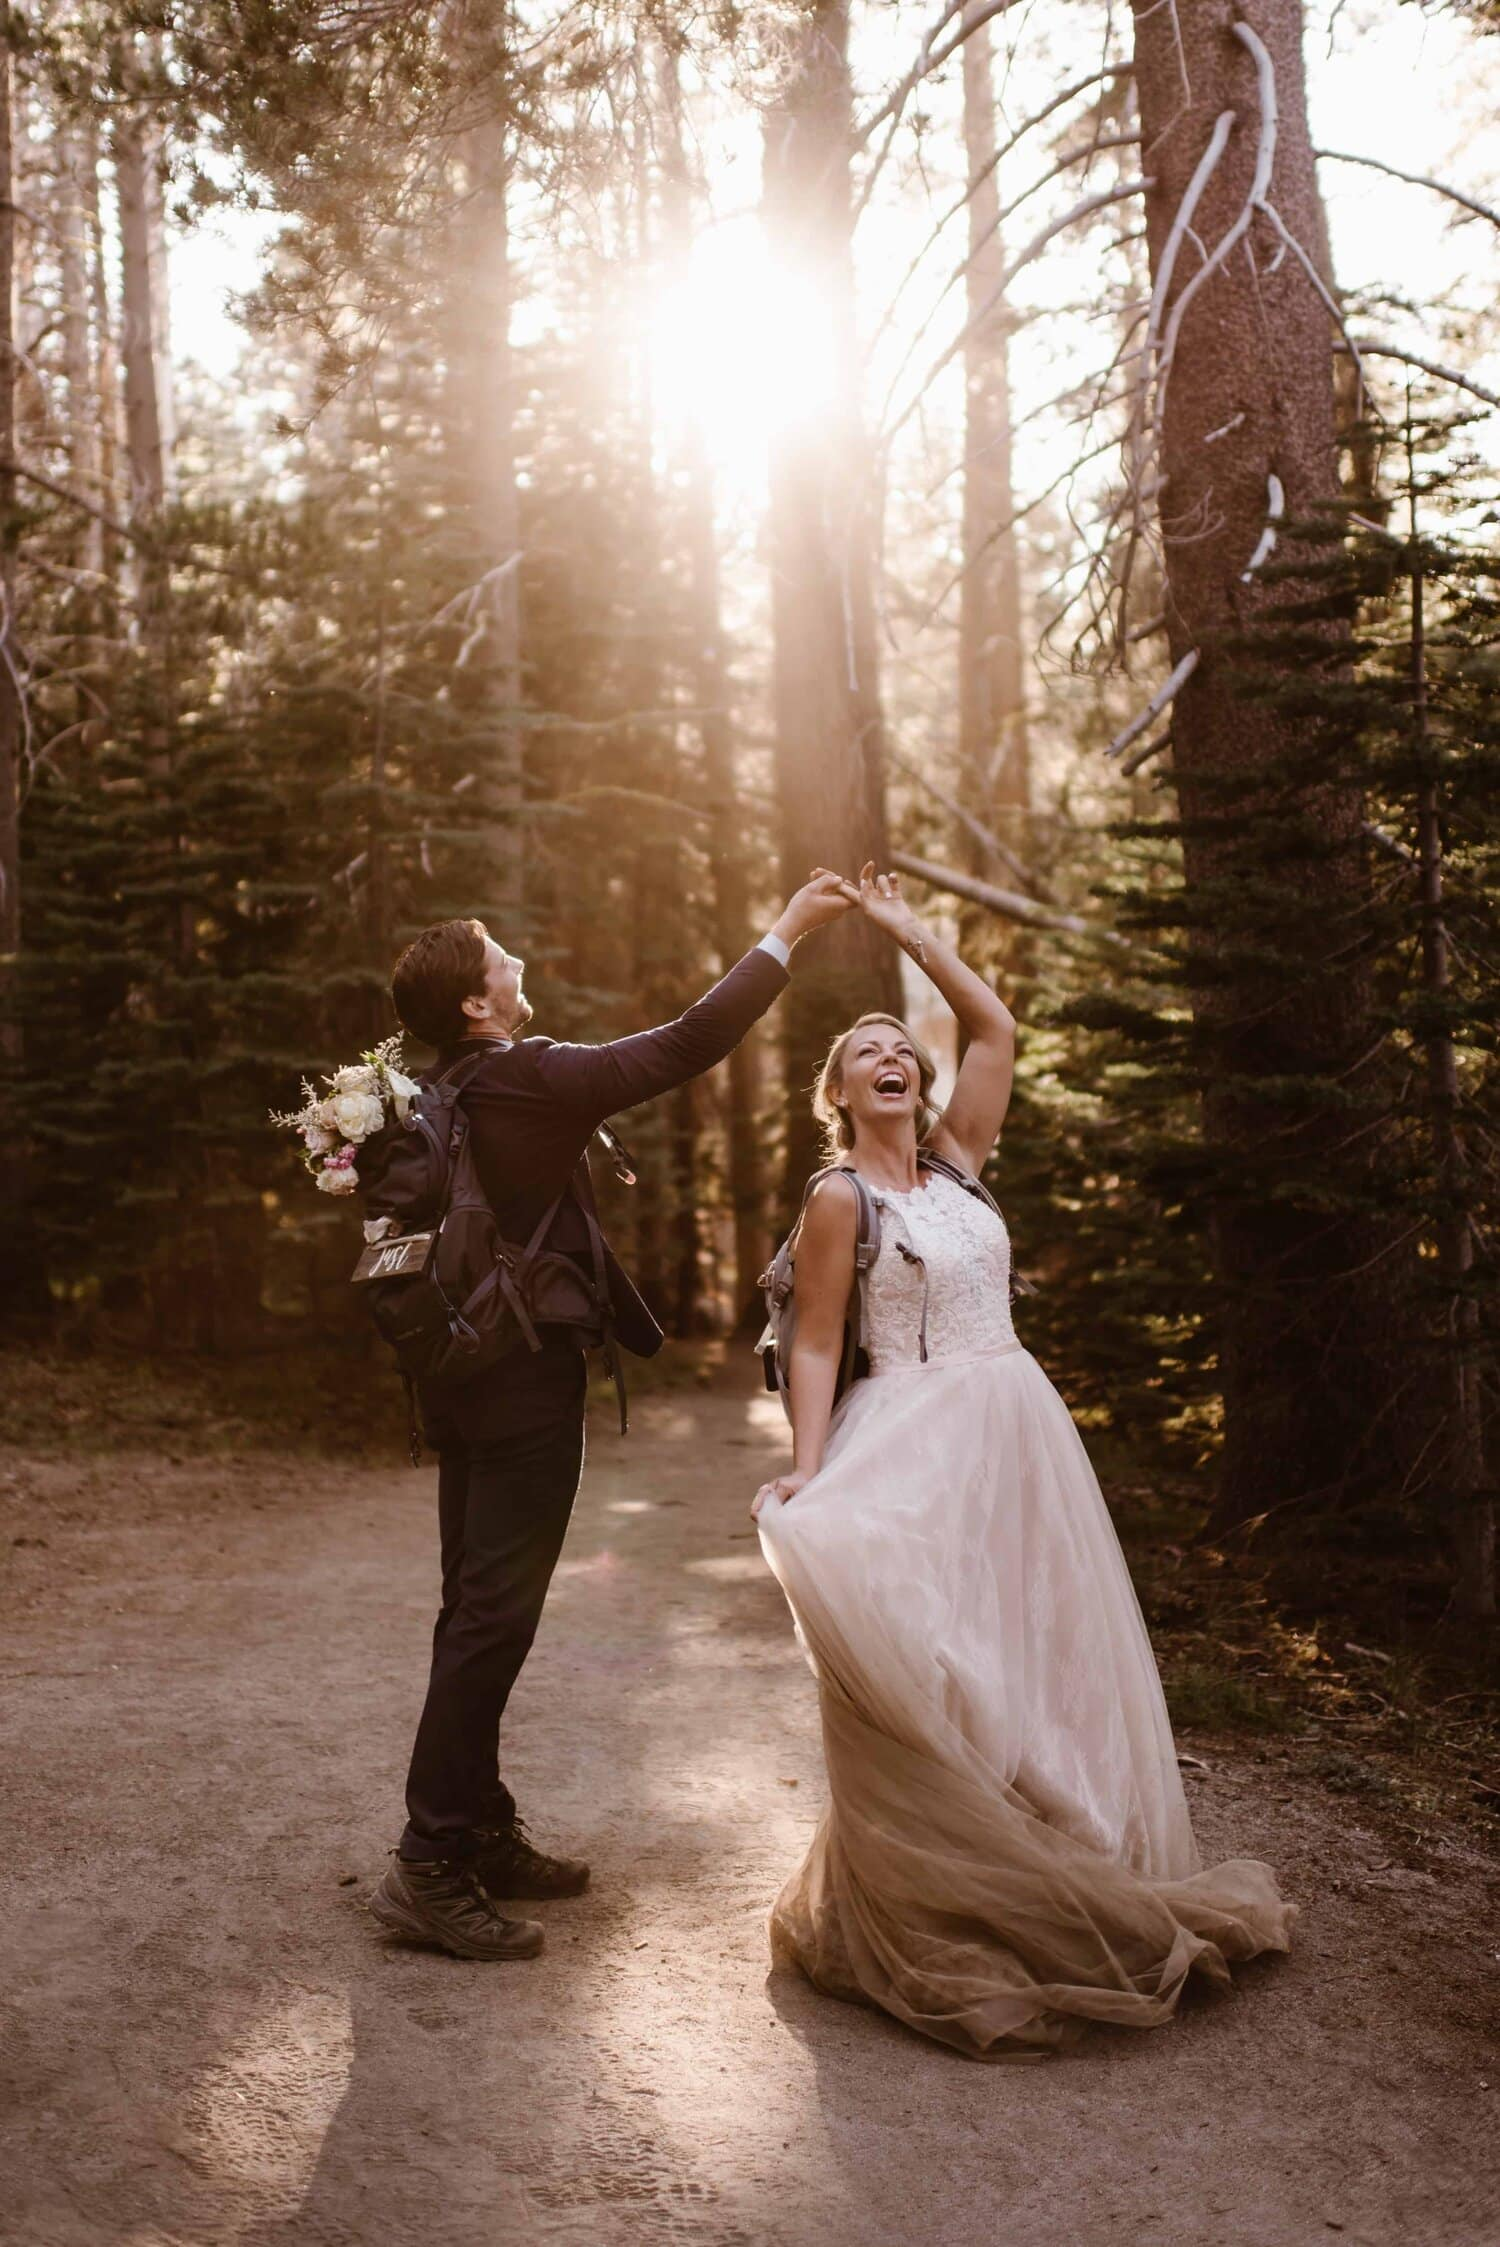 A groom spins his bride in a forest while they both smile. They are both wearing backpacks.